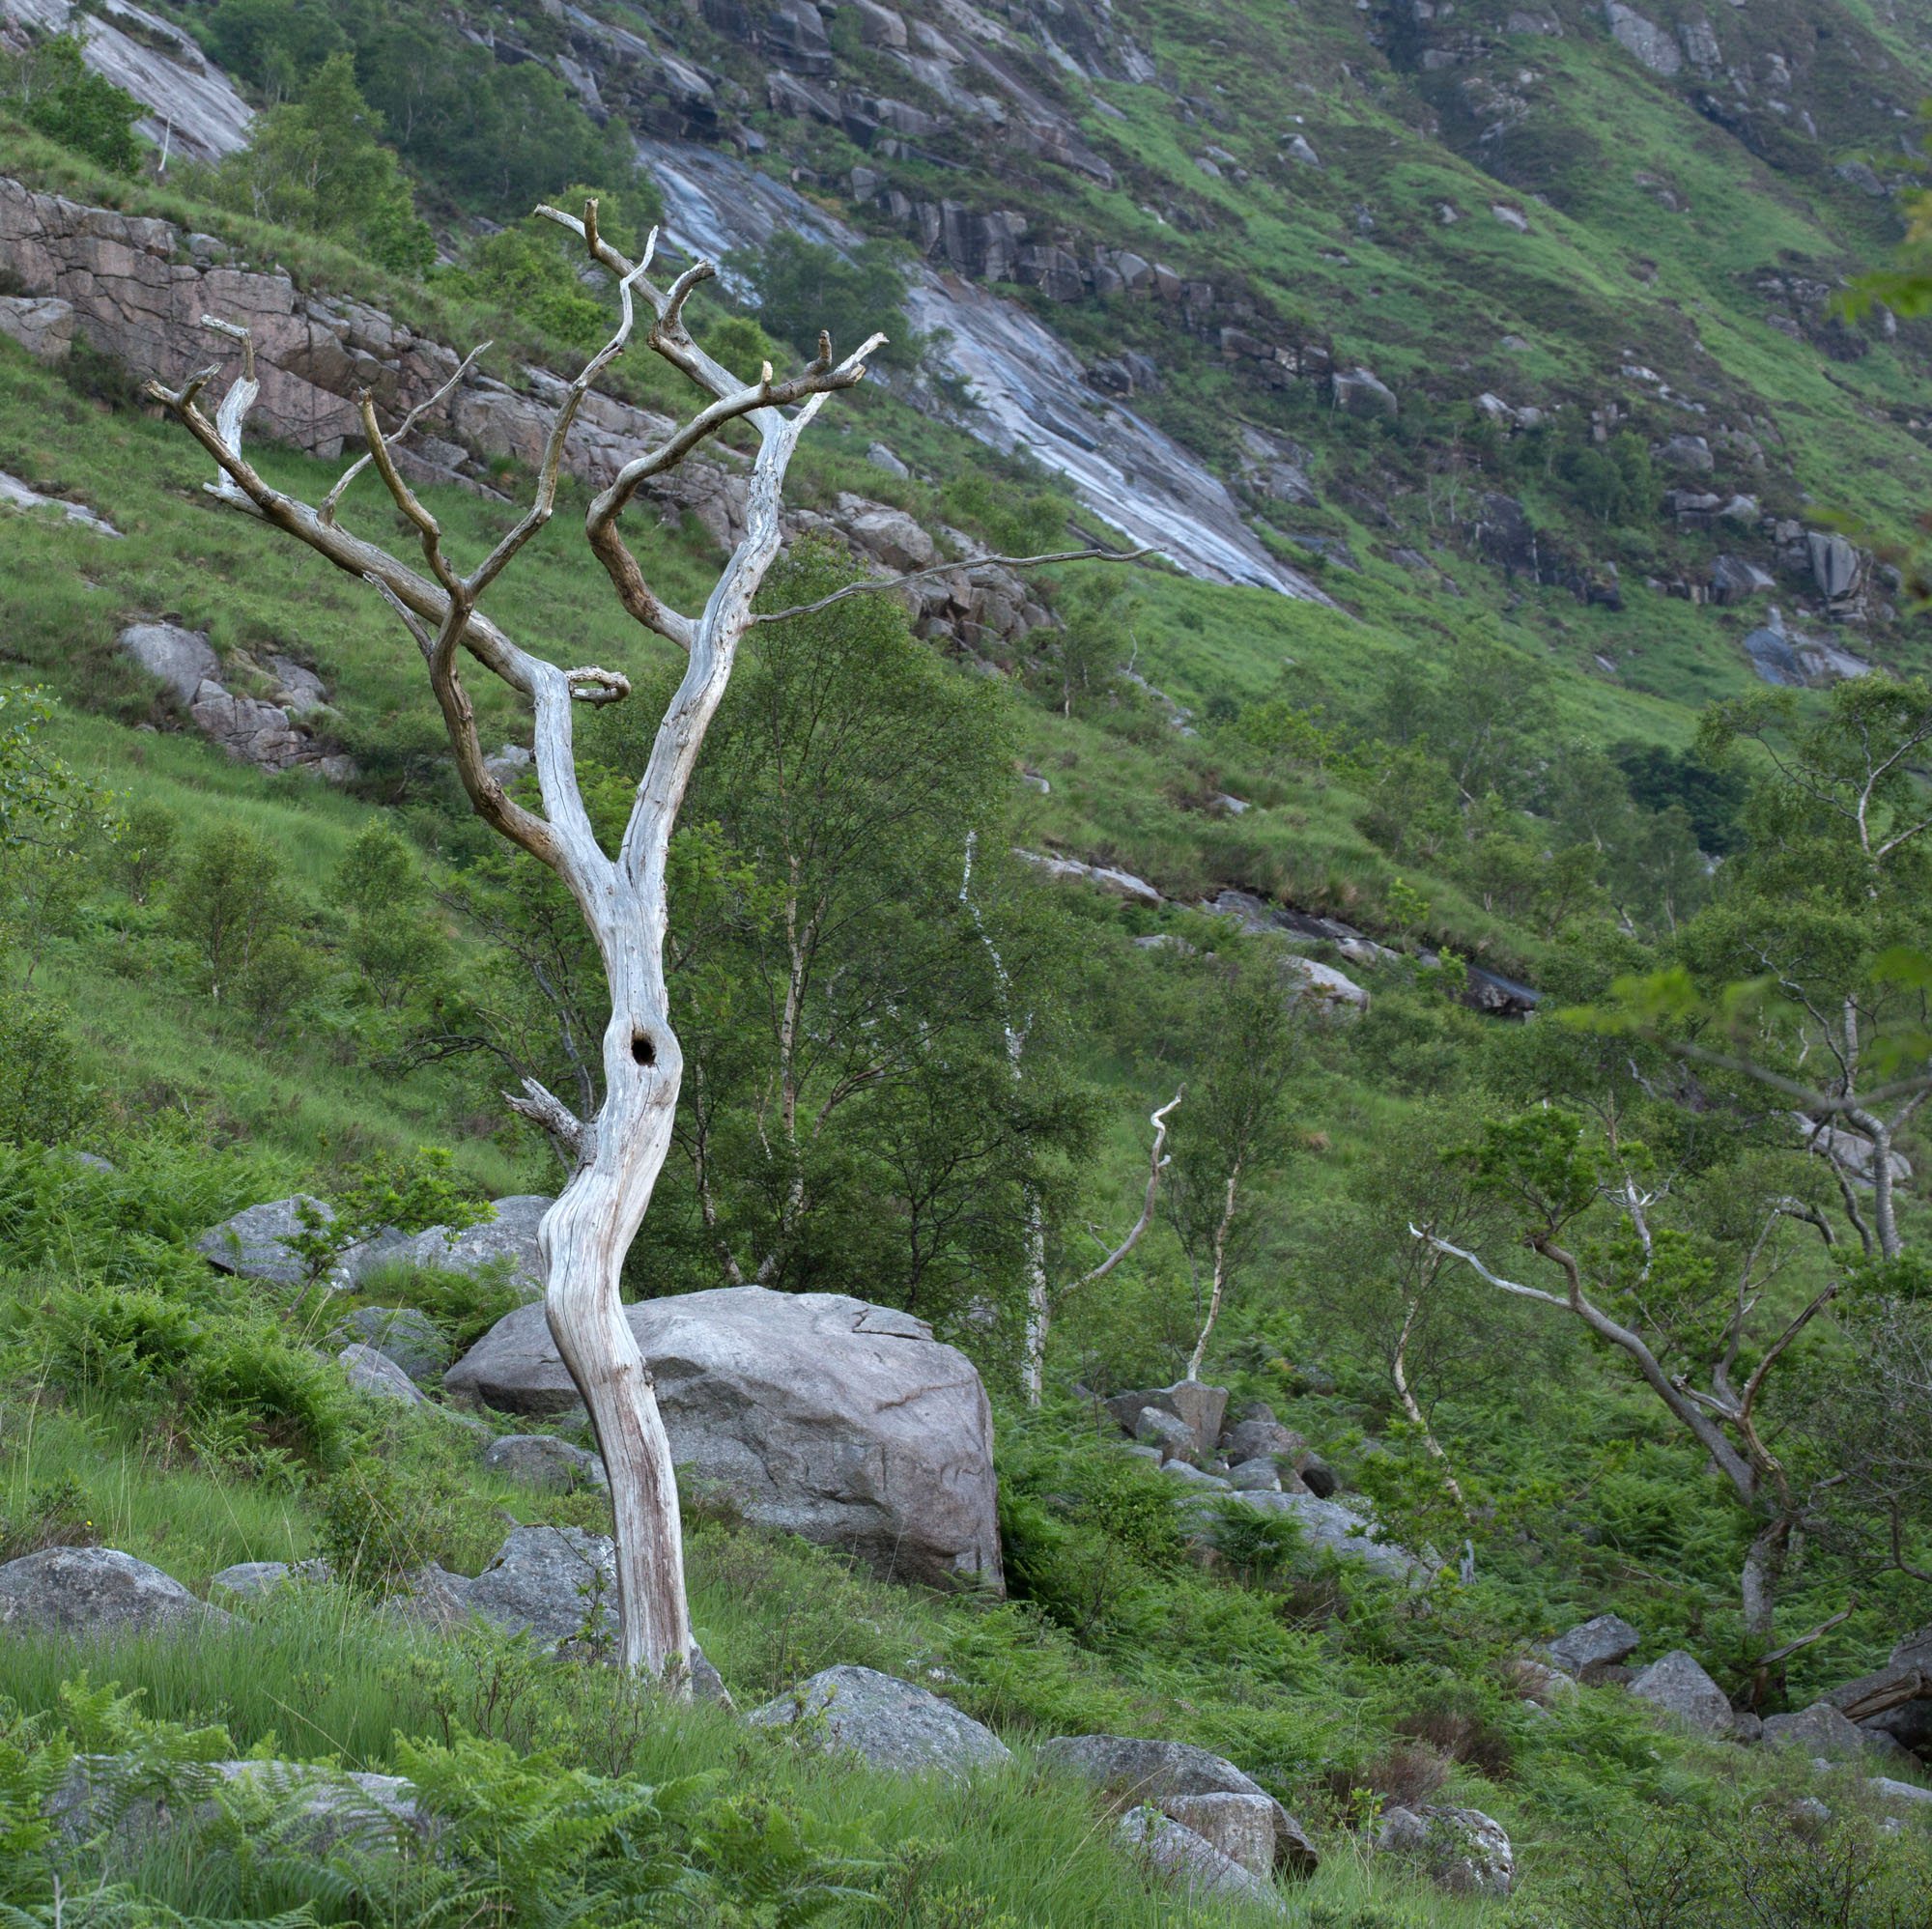 A bare standing tree on a steep green hillside